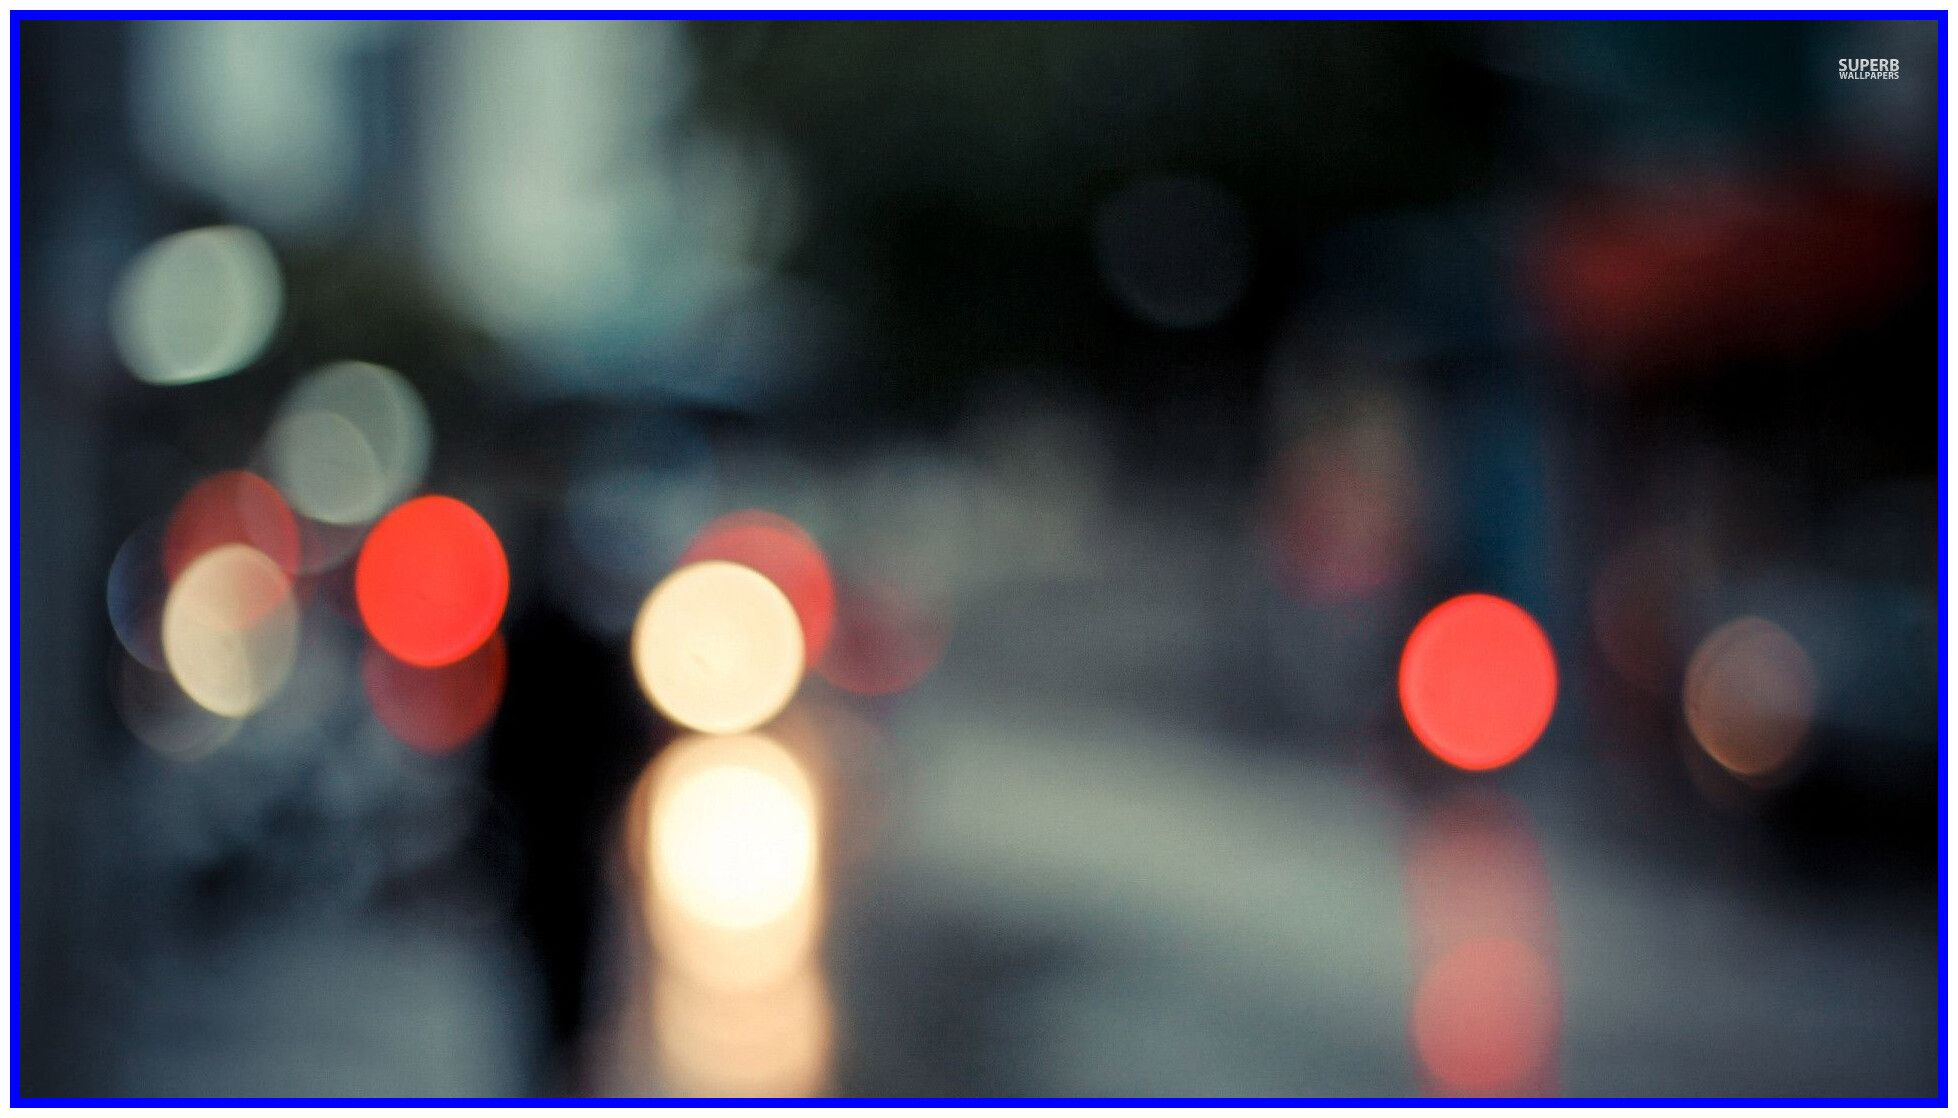 70 Reference Of City Light Blur Background Hd Blurry Lights Blurred Background City Lights